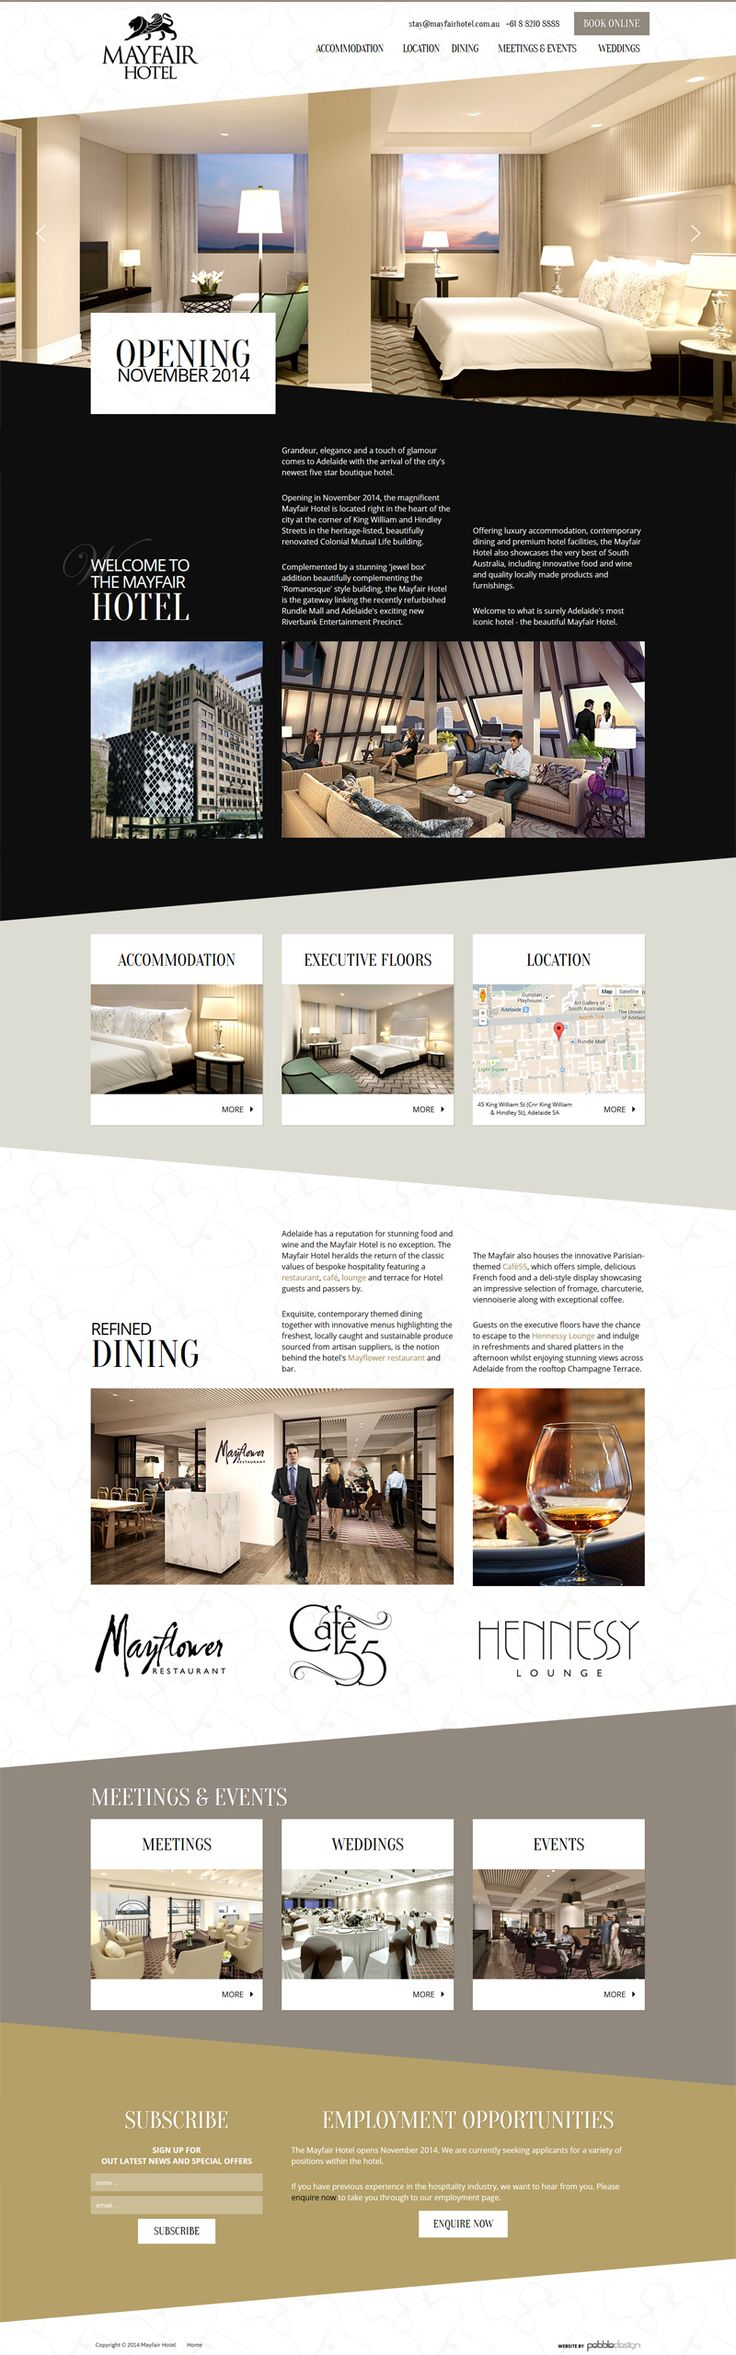 New landing page just gone live for Mayfair Hotel #hotelwebsite #hotel #web #pebbledesign